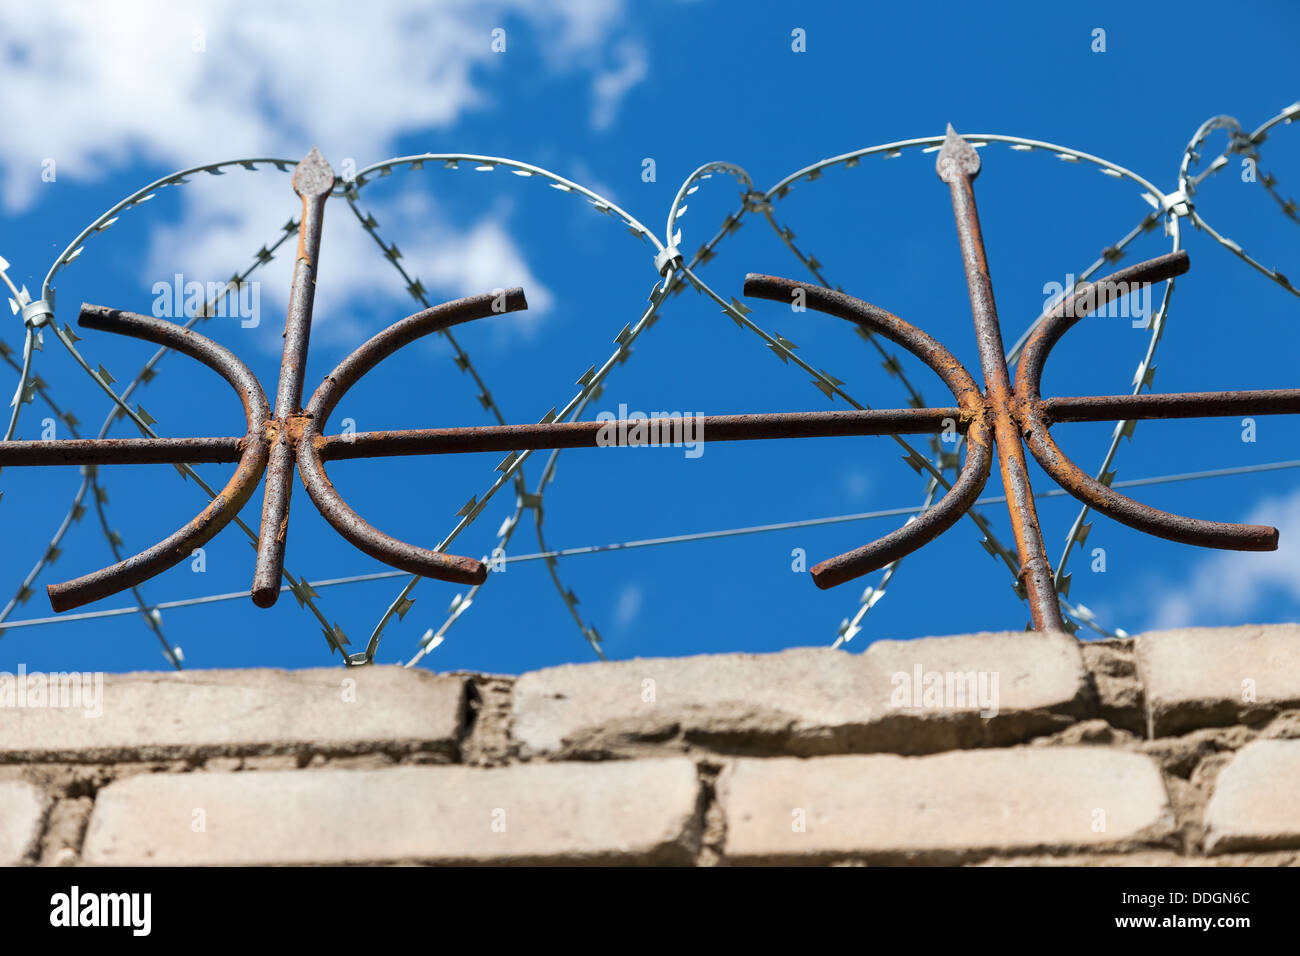 Barbed wire on the fence against a bright blue sky - Stock Image